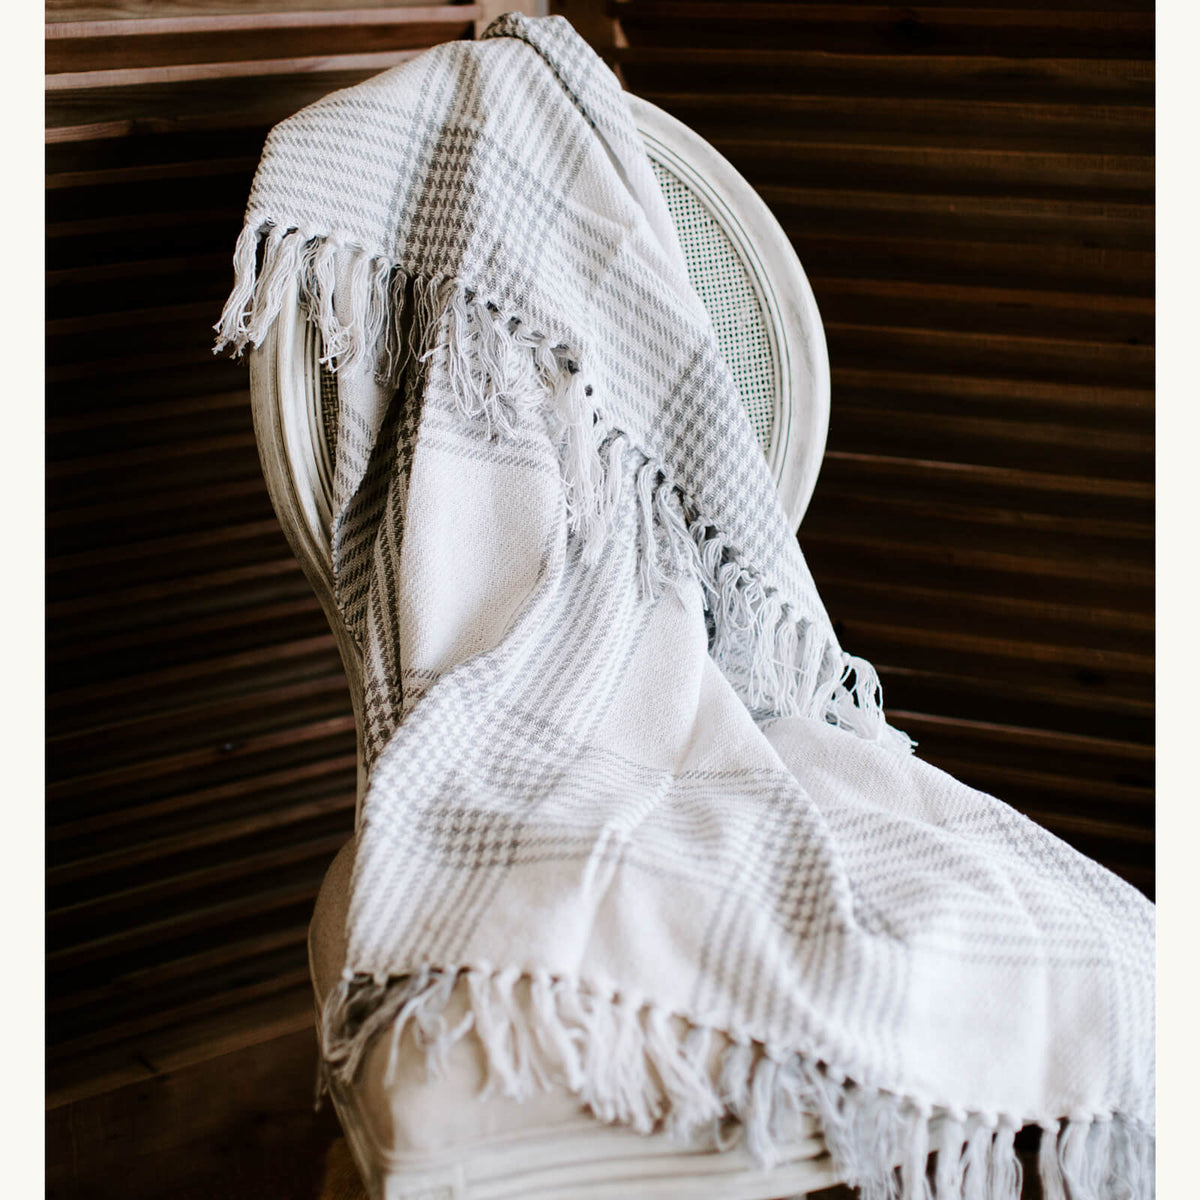 Gray and white houndstooth throw with tassel ends draped over a chair